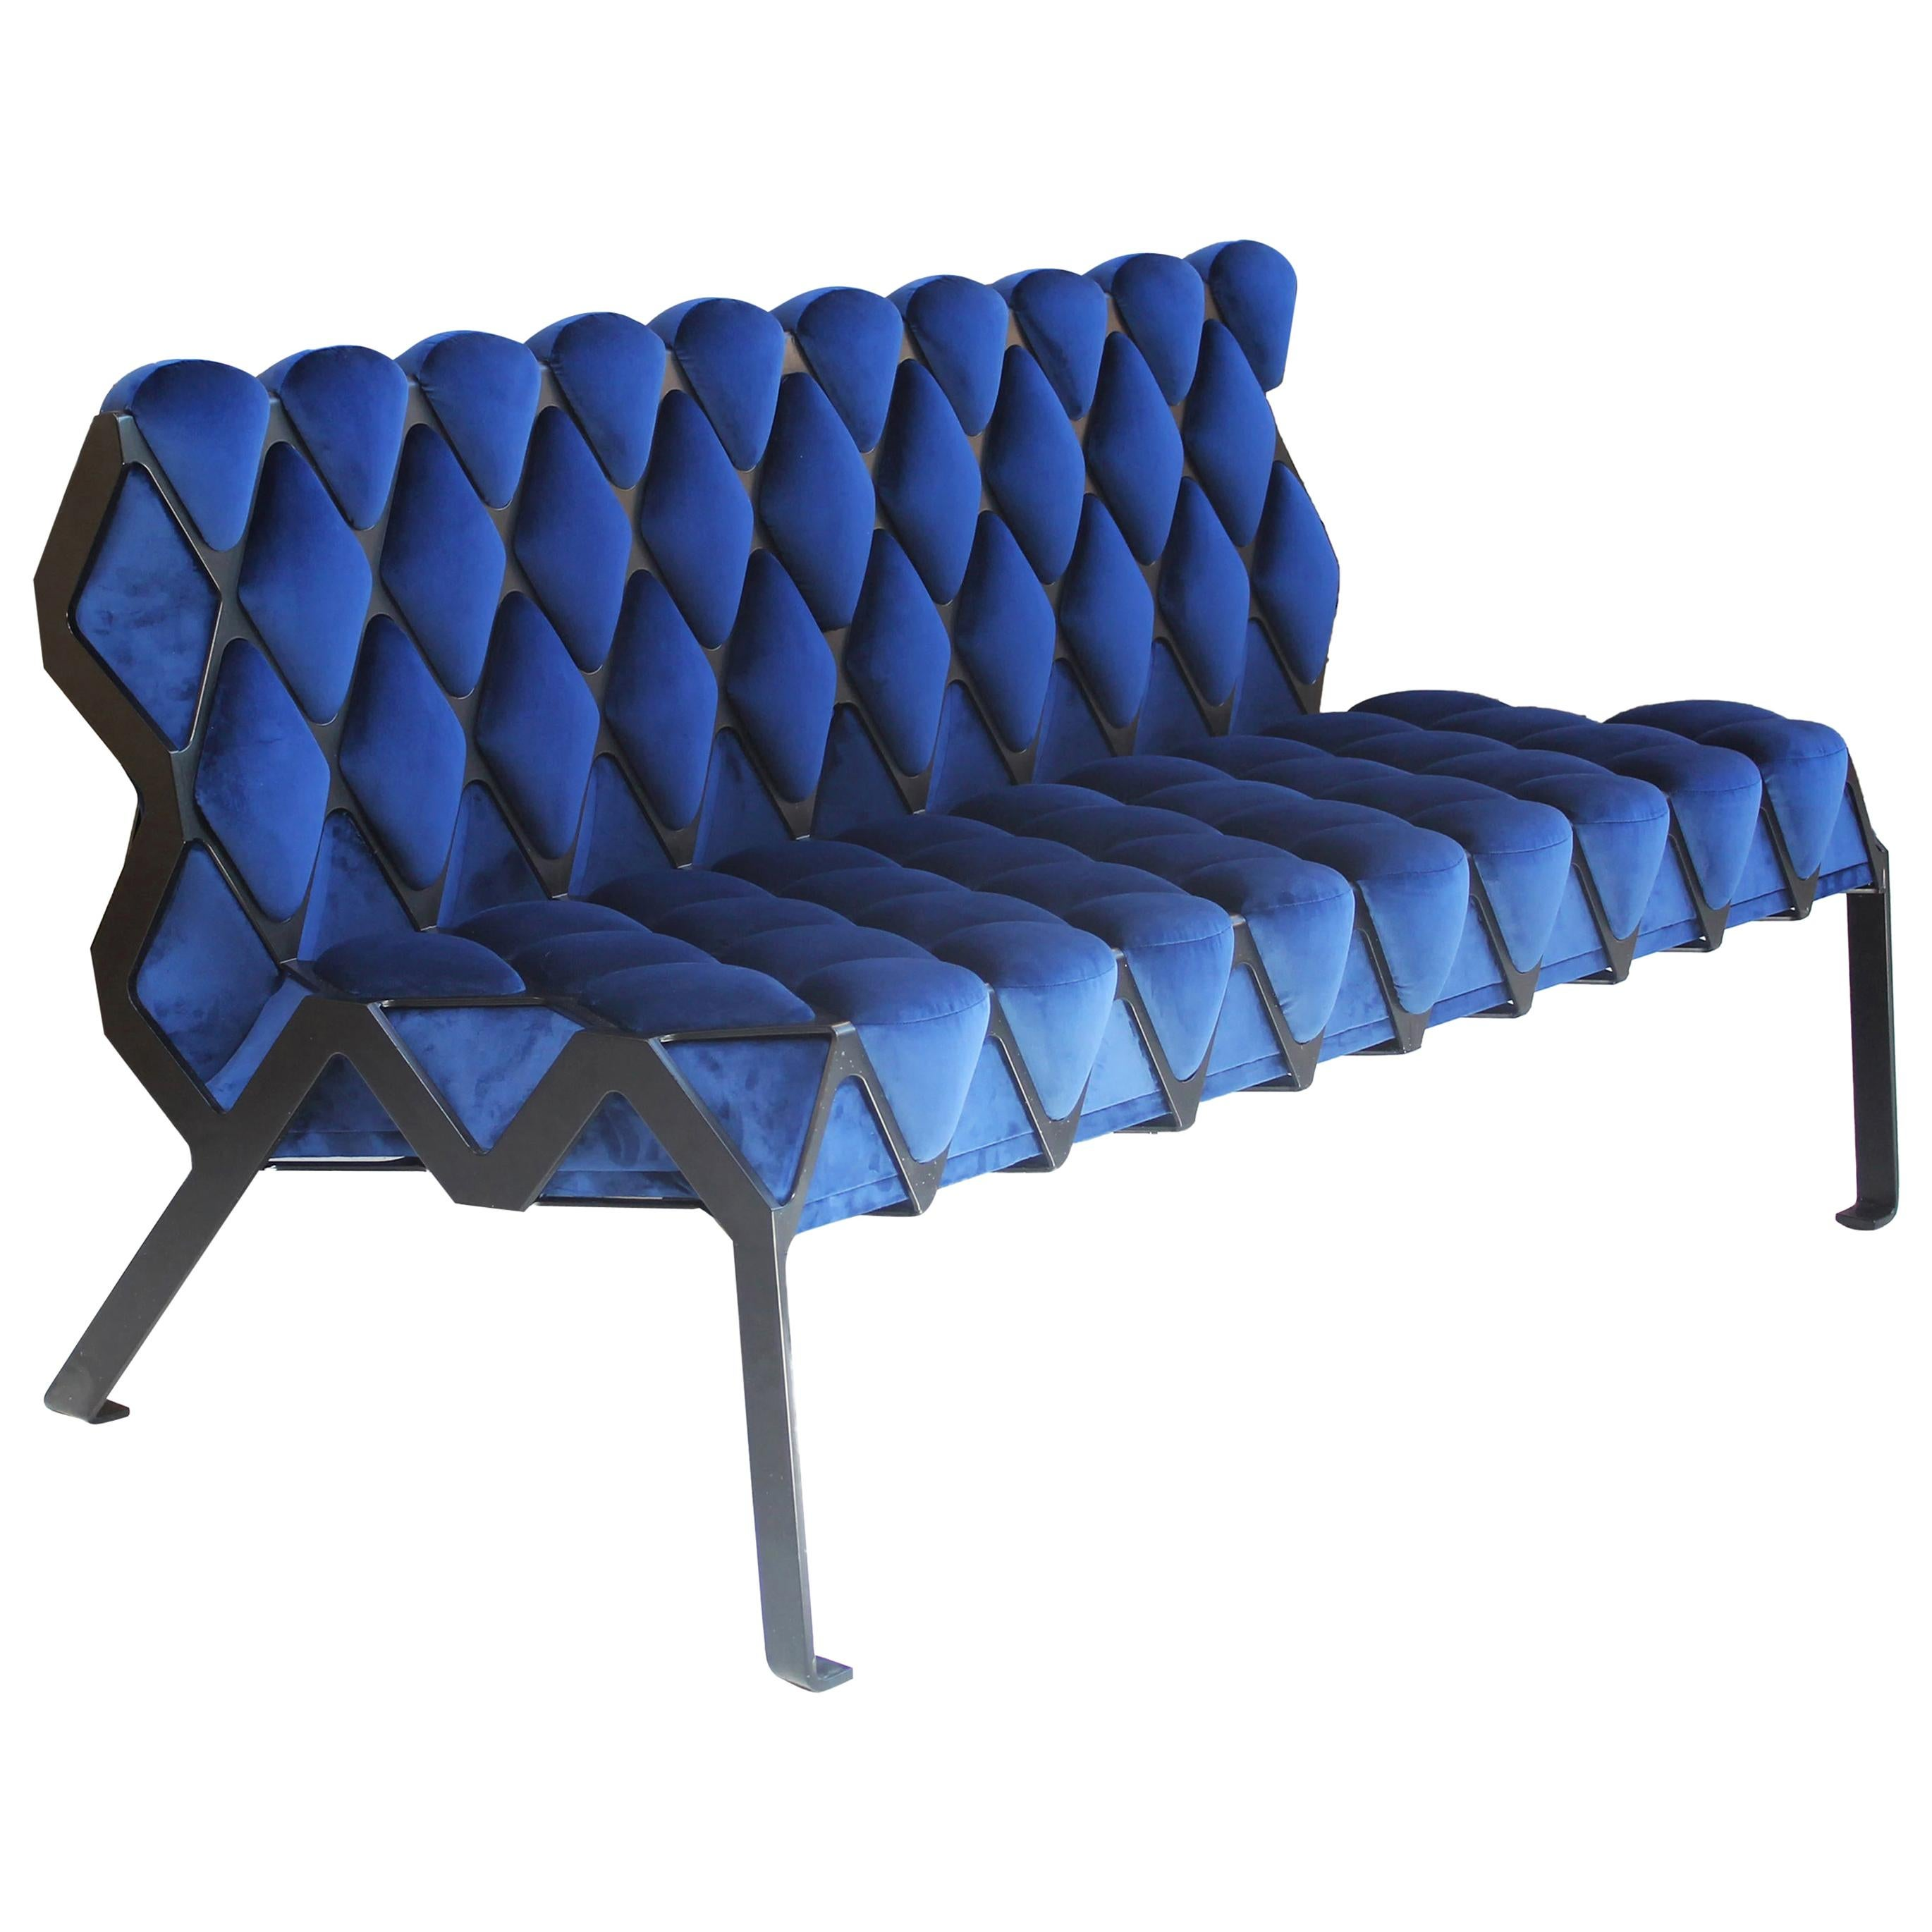 Handcrafted Matrice Settee in Black Steel and Blue Velvet Customizable